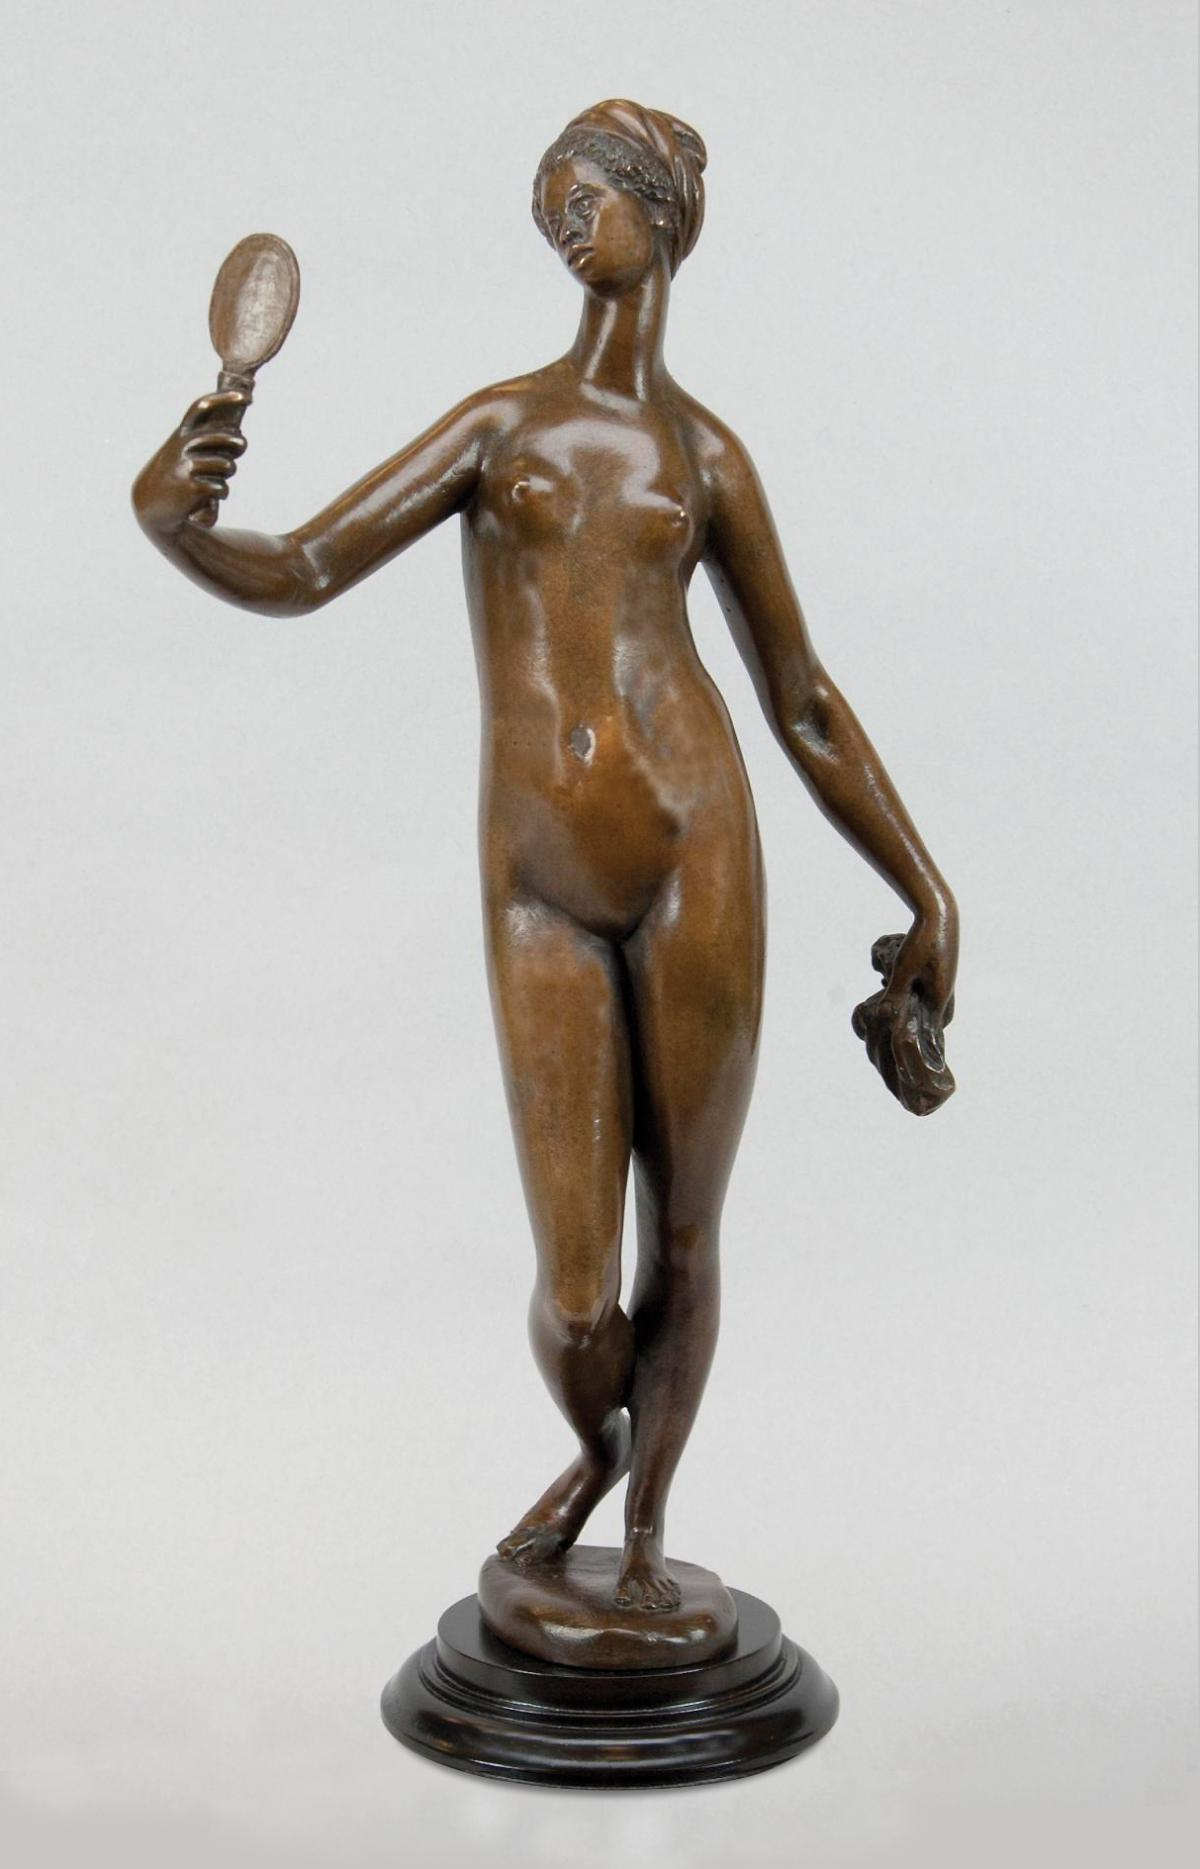 Bronze colored sculpture of a woman looking at herself in a hand-held mirror